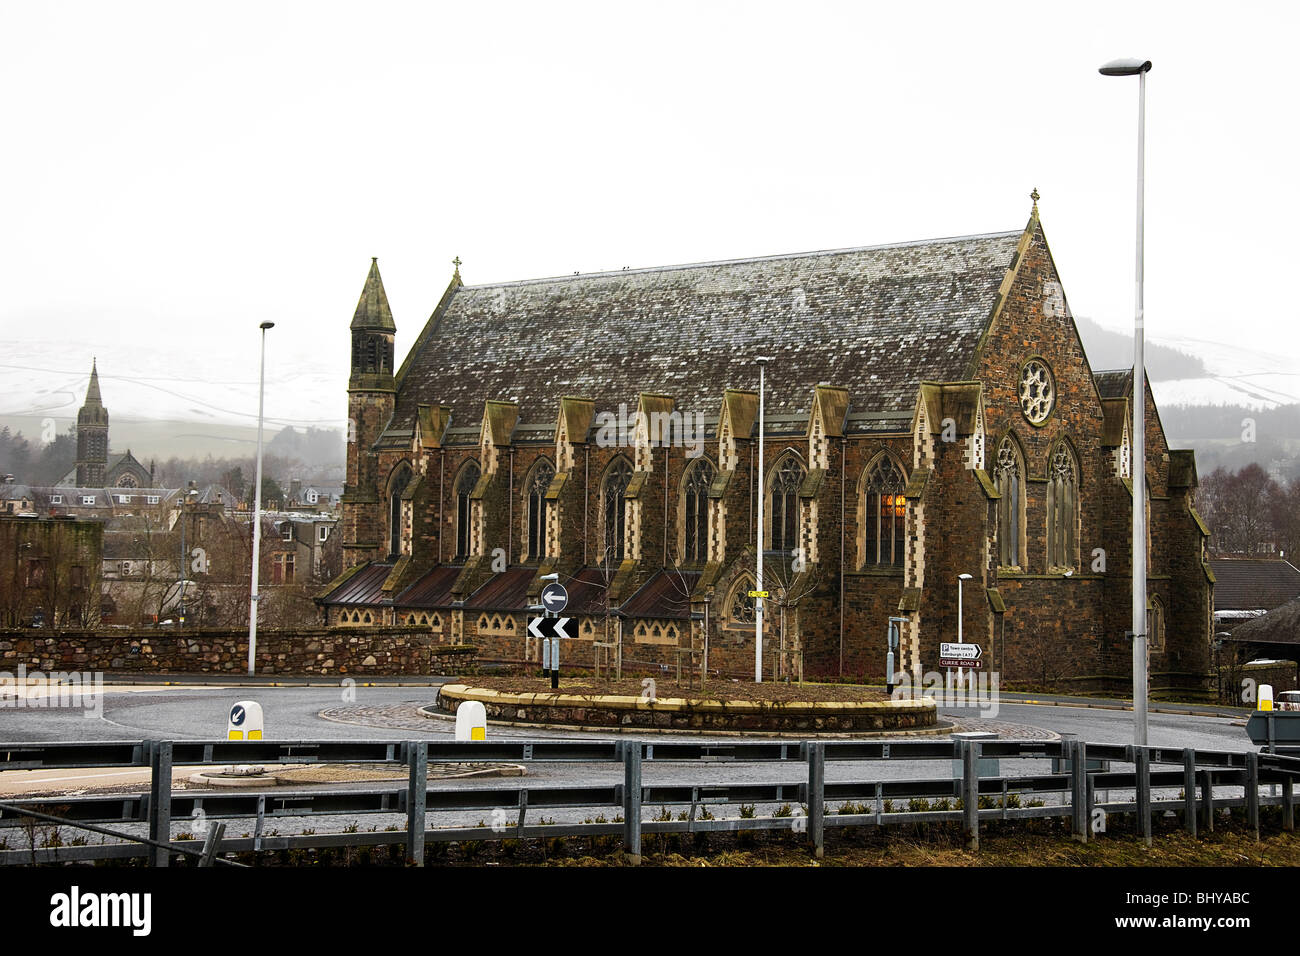 The RC church of Our lady St Andrews. Galashiels - Stock Image